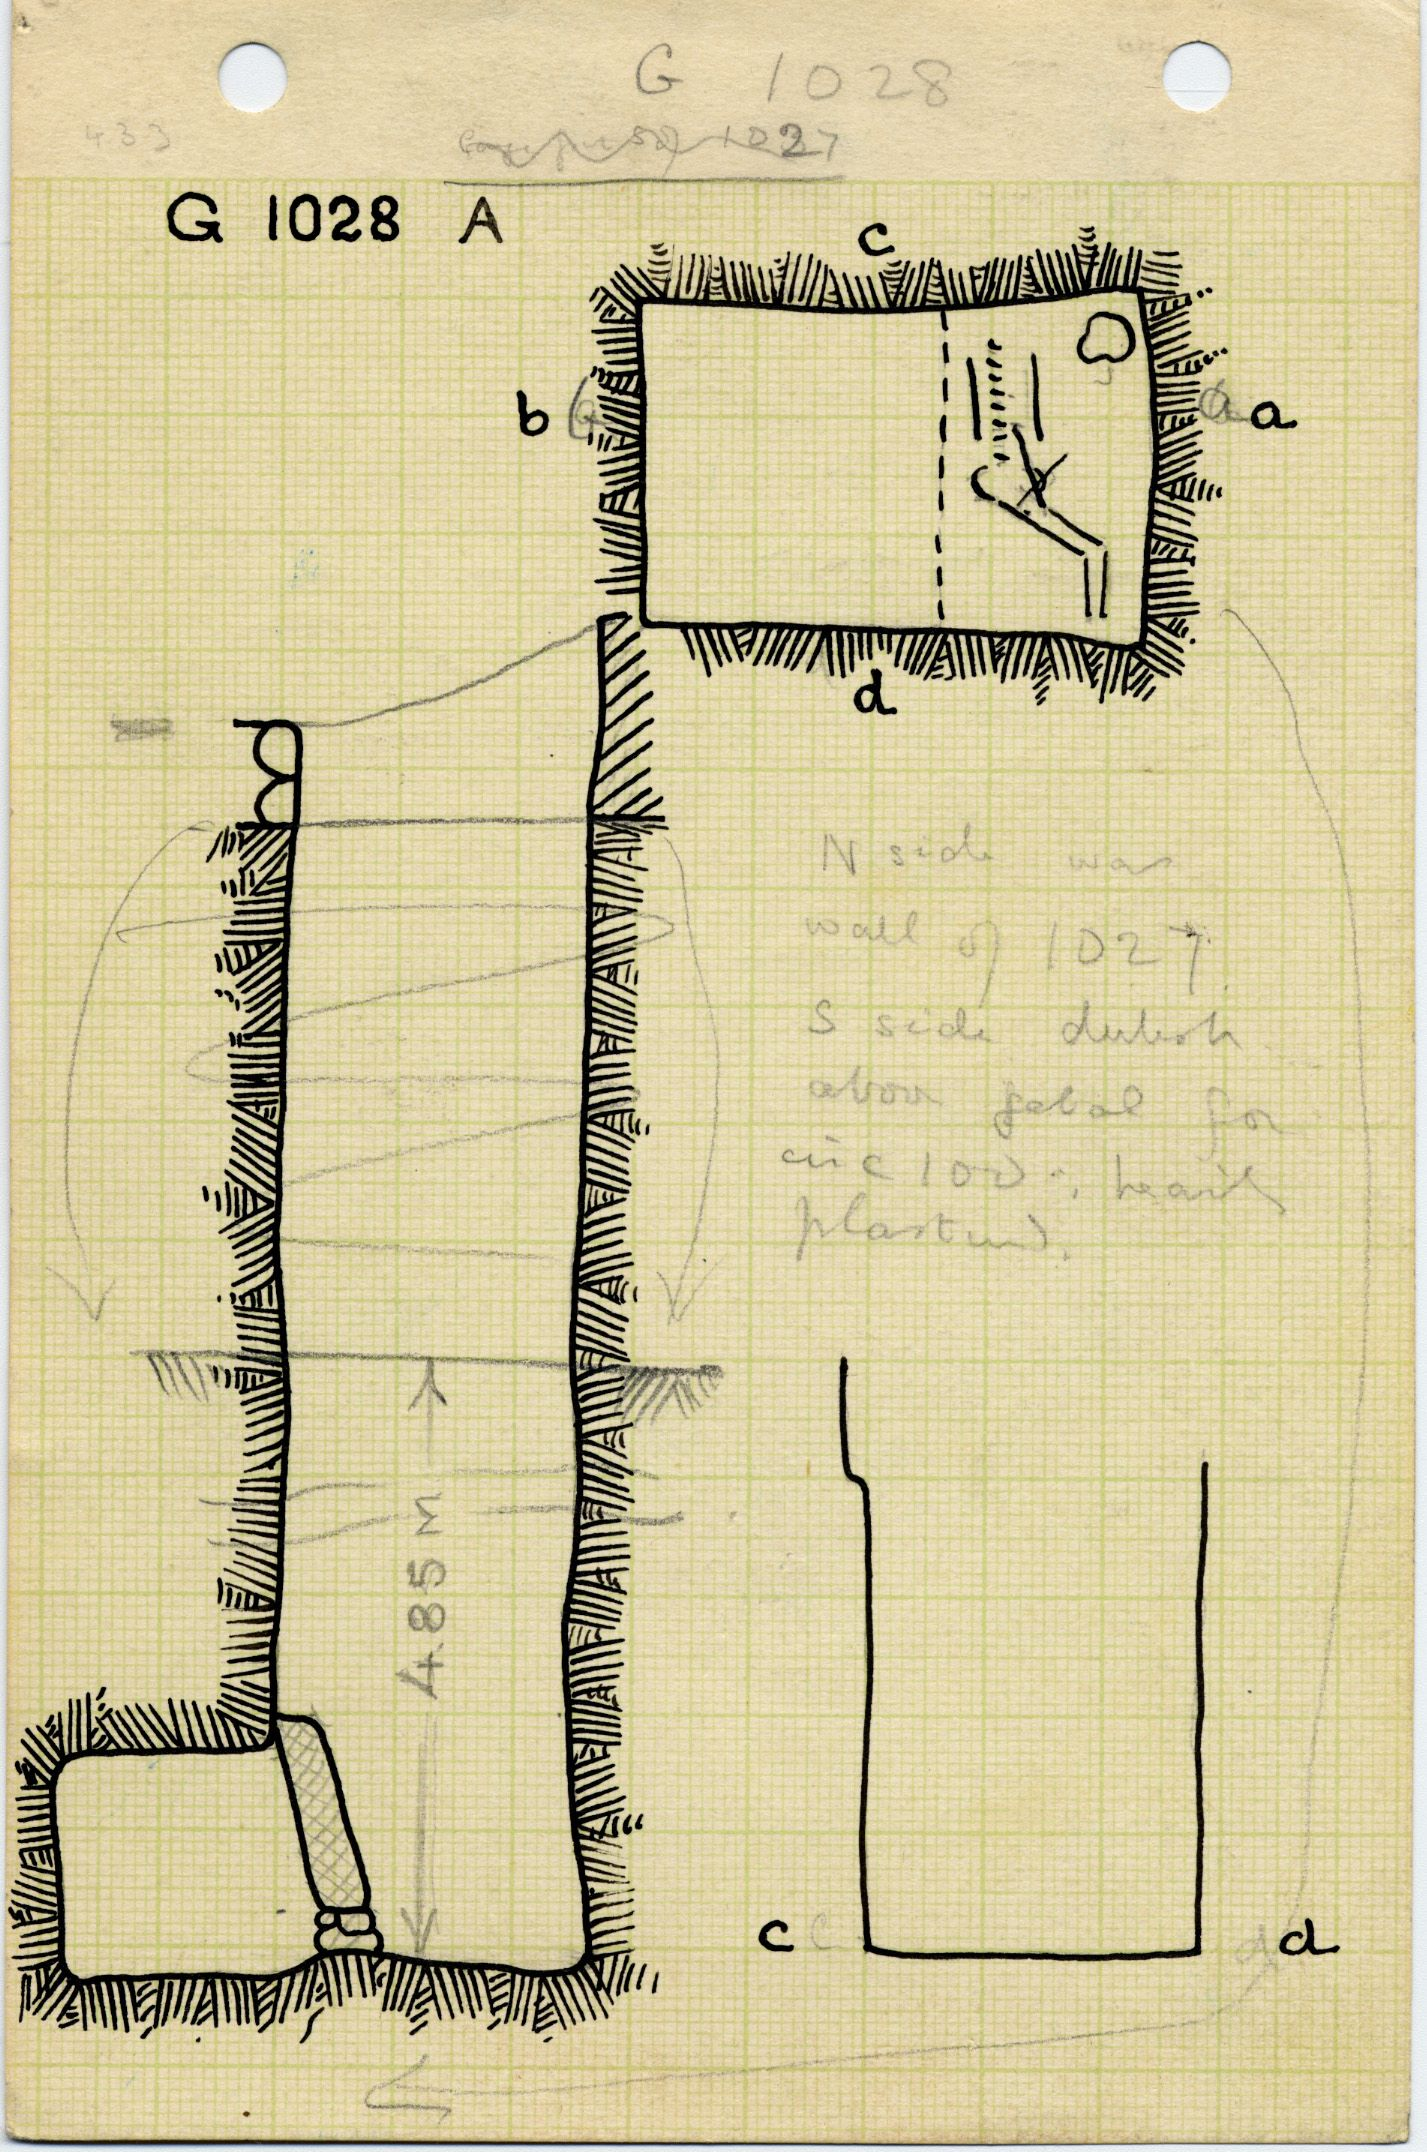 Maps and plans: G 1028, Shaft A